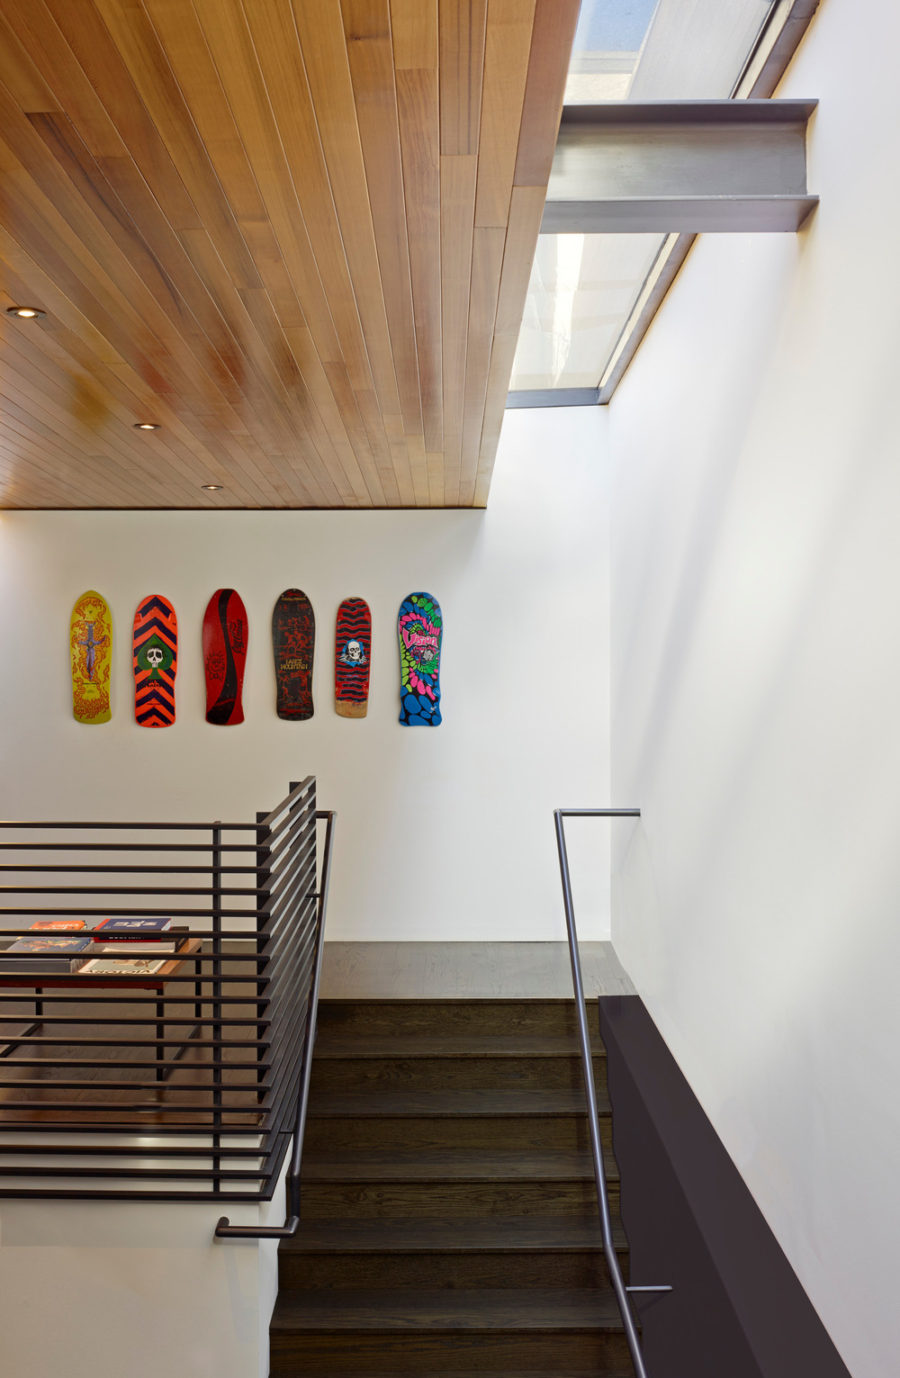 A great way to repurpose old skateboards is to turn them into colorful wall art